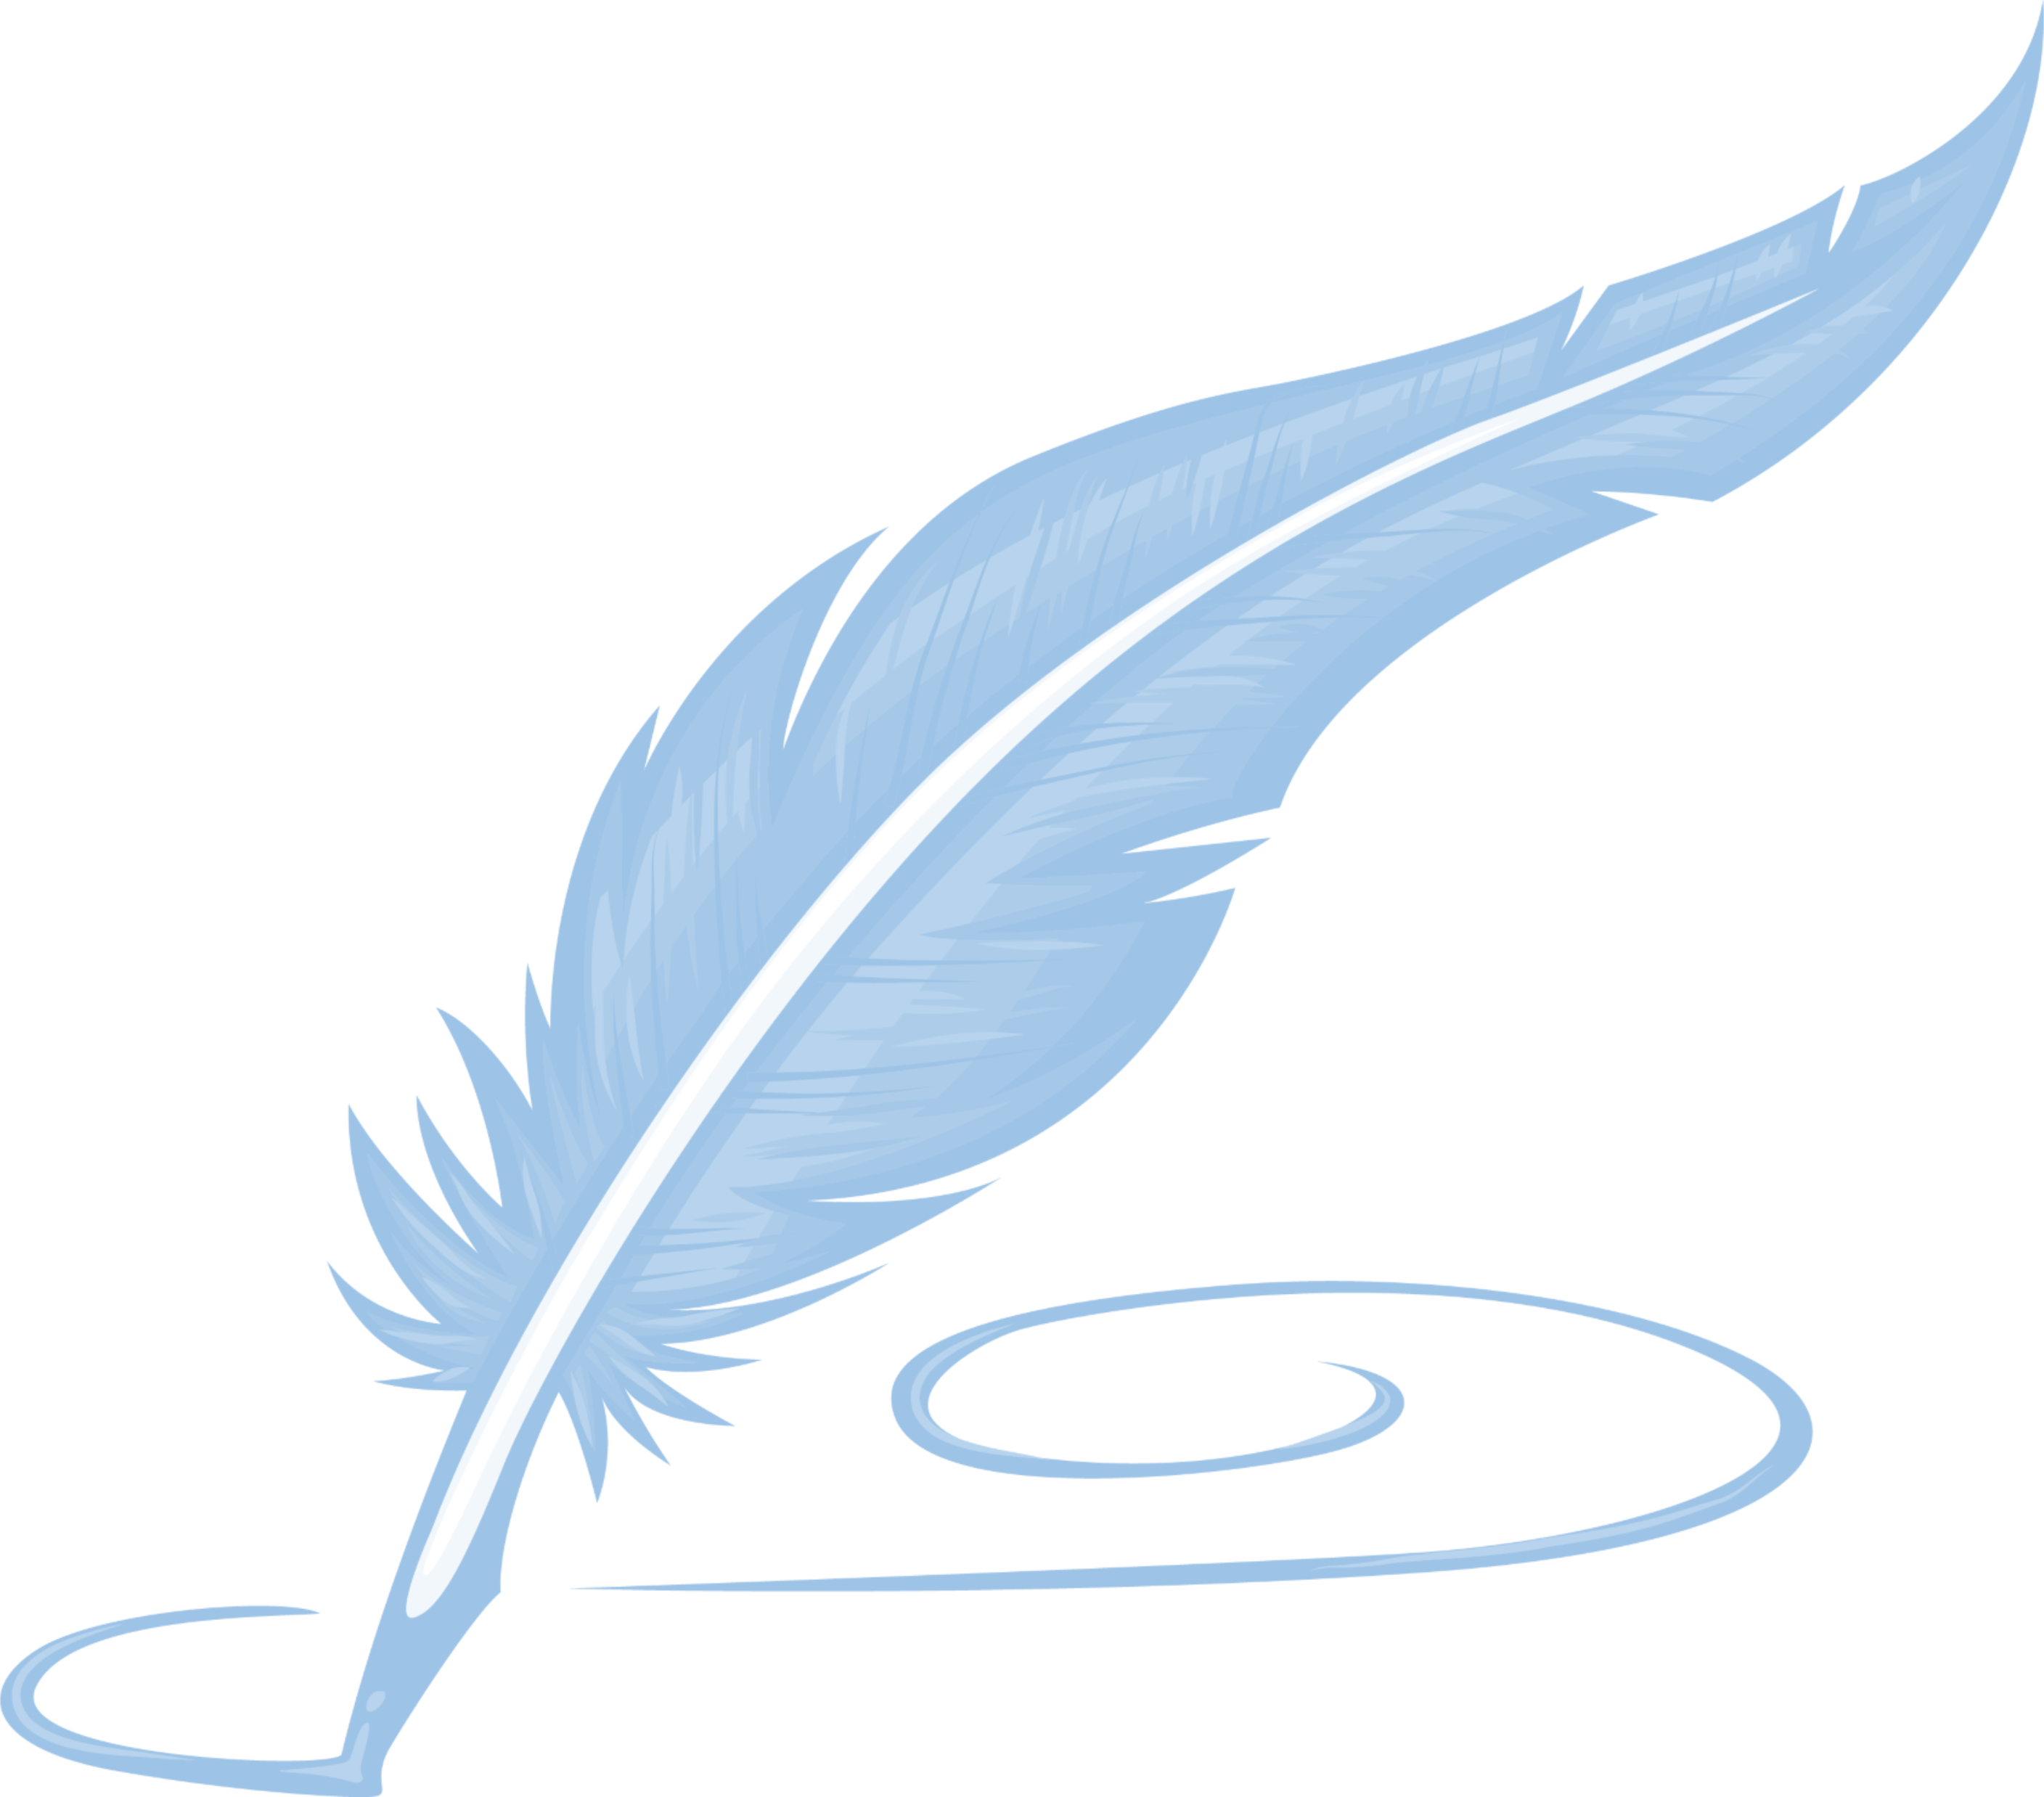 45eaaafbbfbb8 Feather Pen Png & Free Feather Pen.png Transparent Images #10933 - PNGio